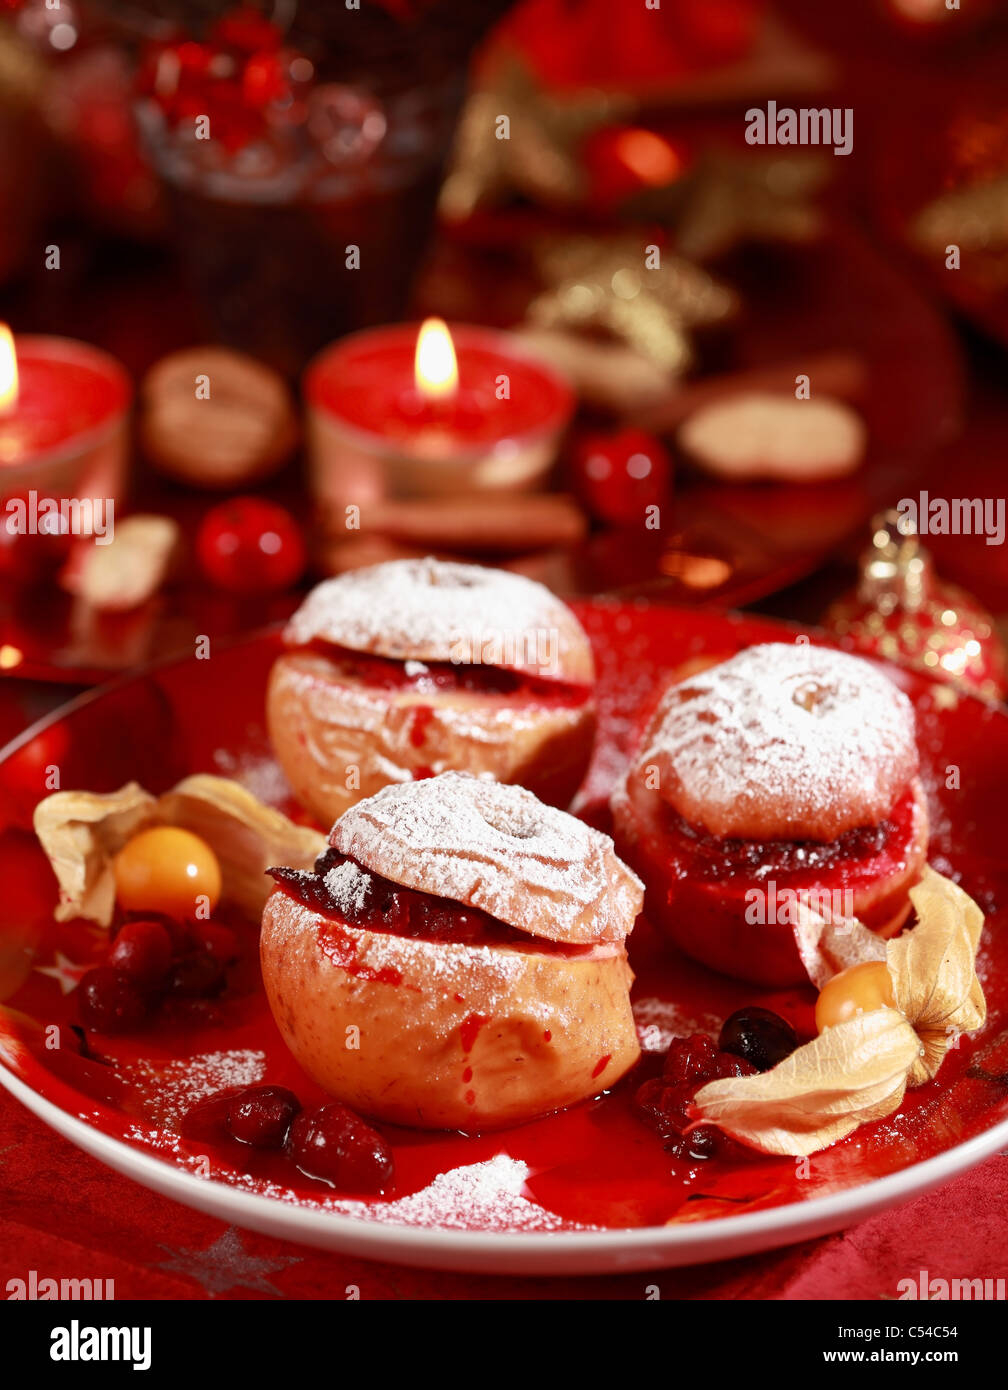 Delicious baked apple with cranberry stuffing for Christmas - Stock Image